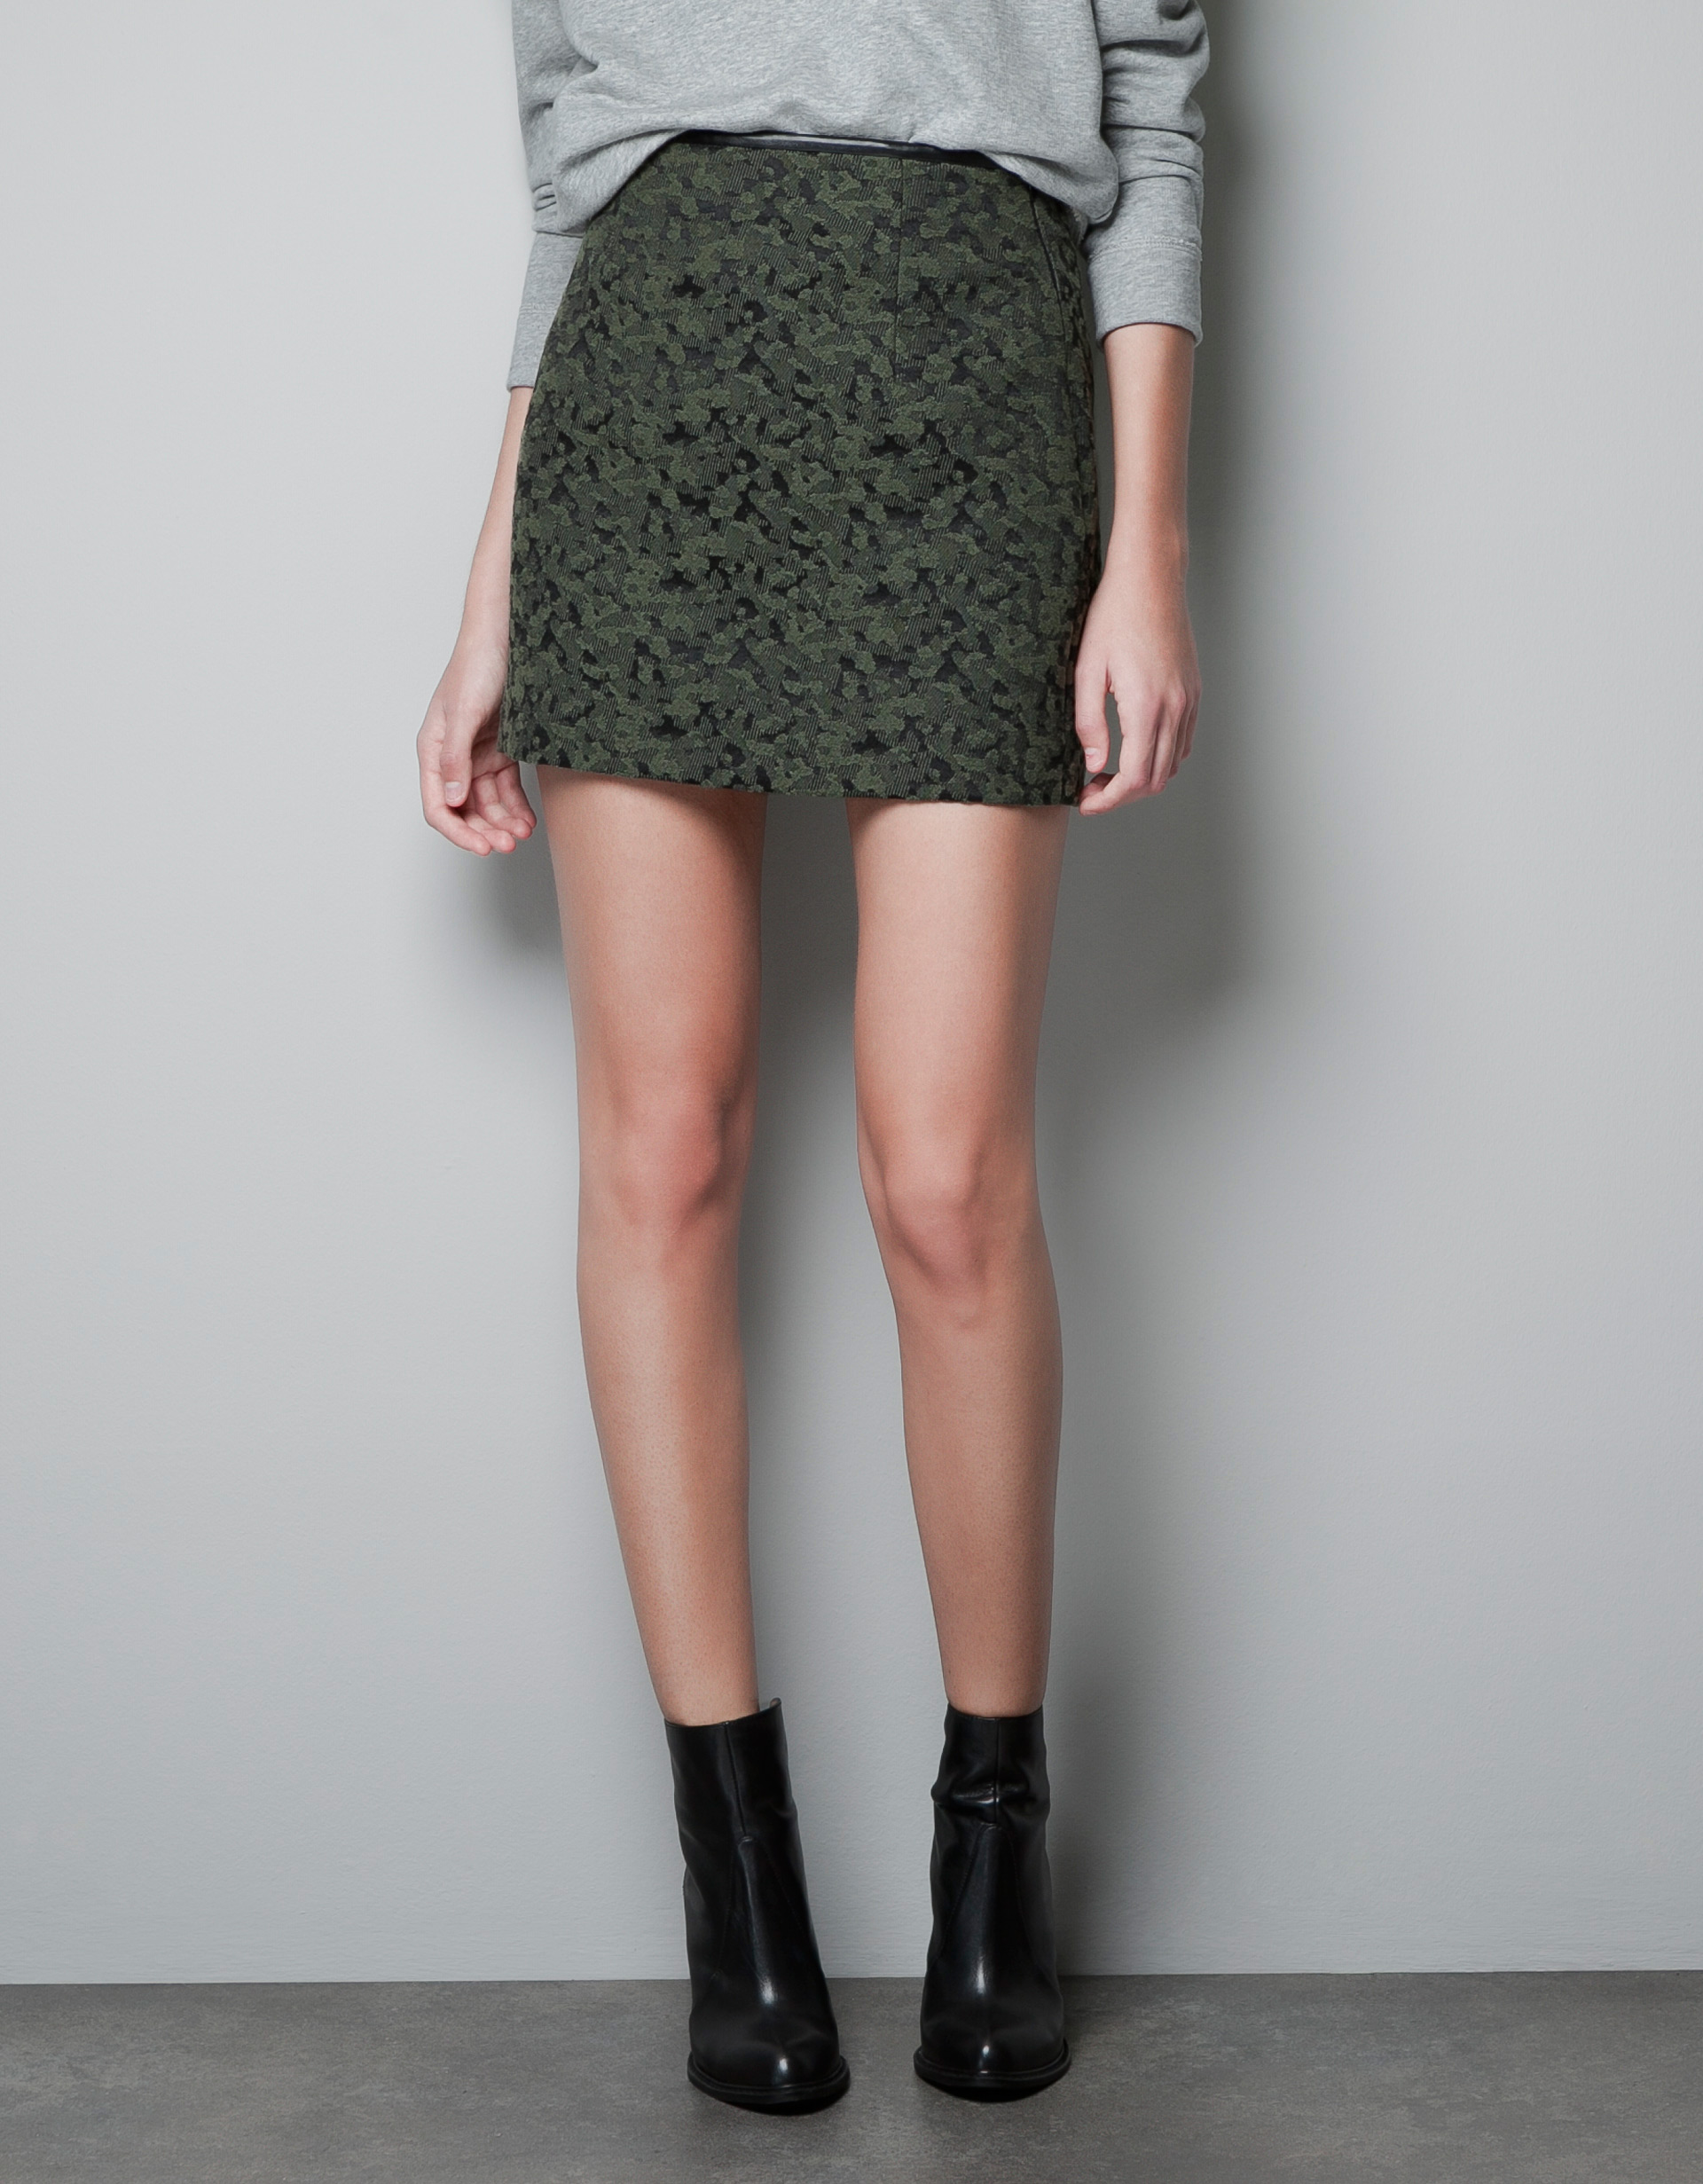 Zara Patterned Mini Skirt in Green | Lyst